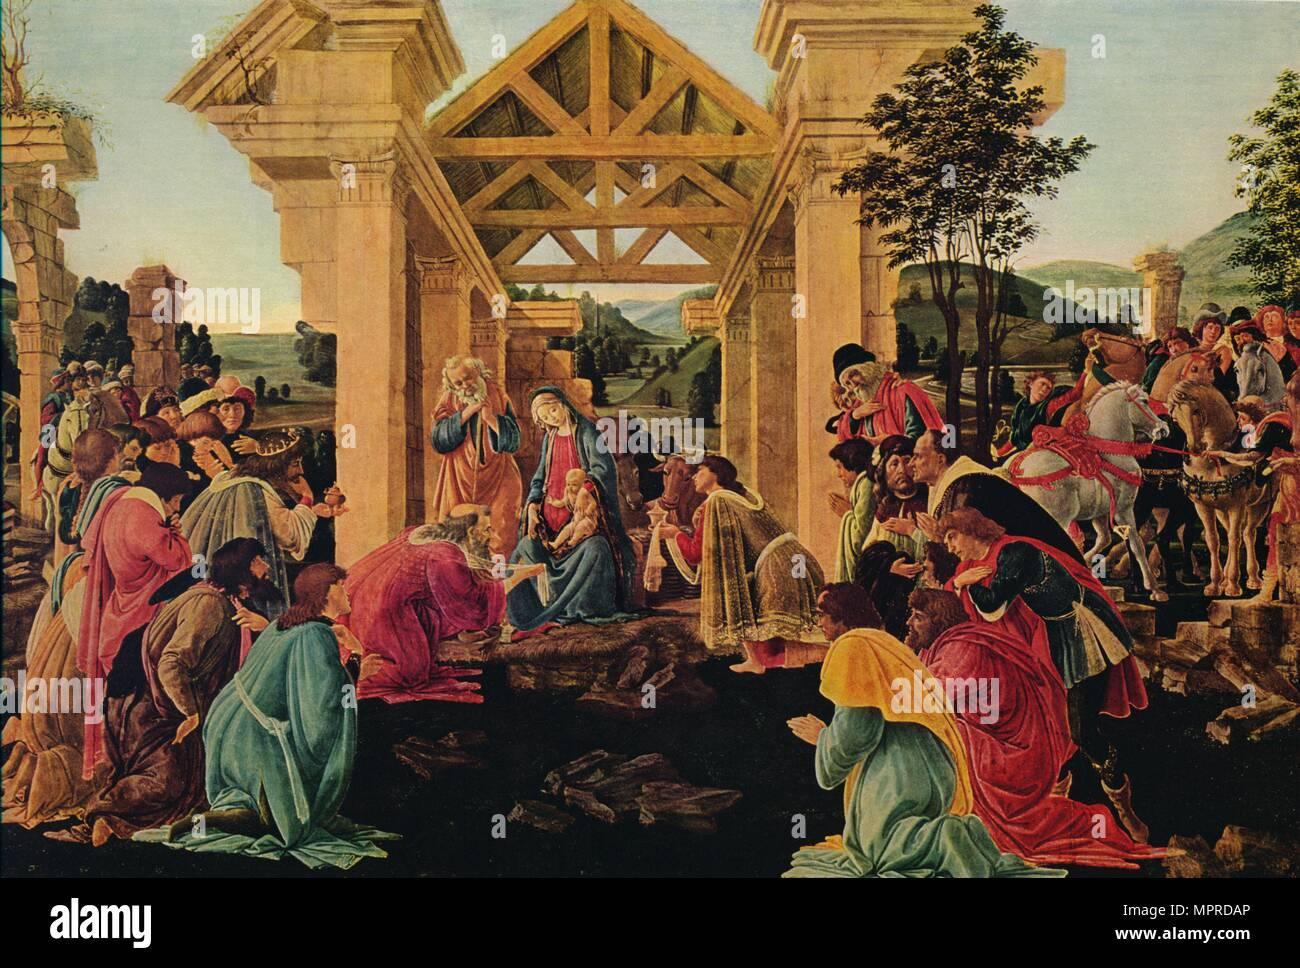 'The Adoration of the Magi', c1475-1476. Artist: Sandro Botticelli. - Stock Image